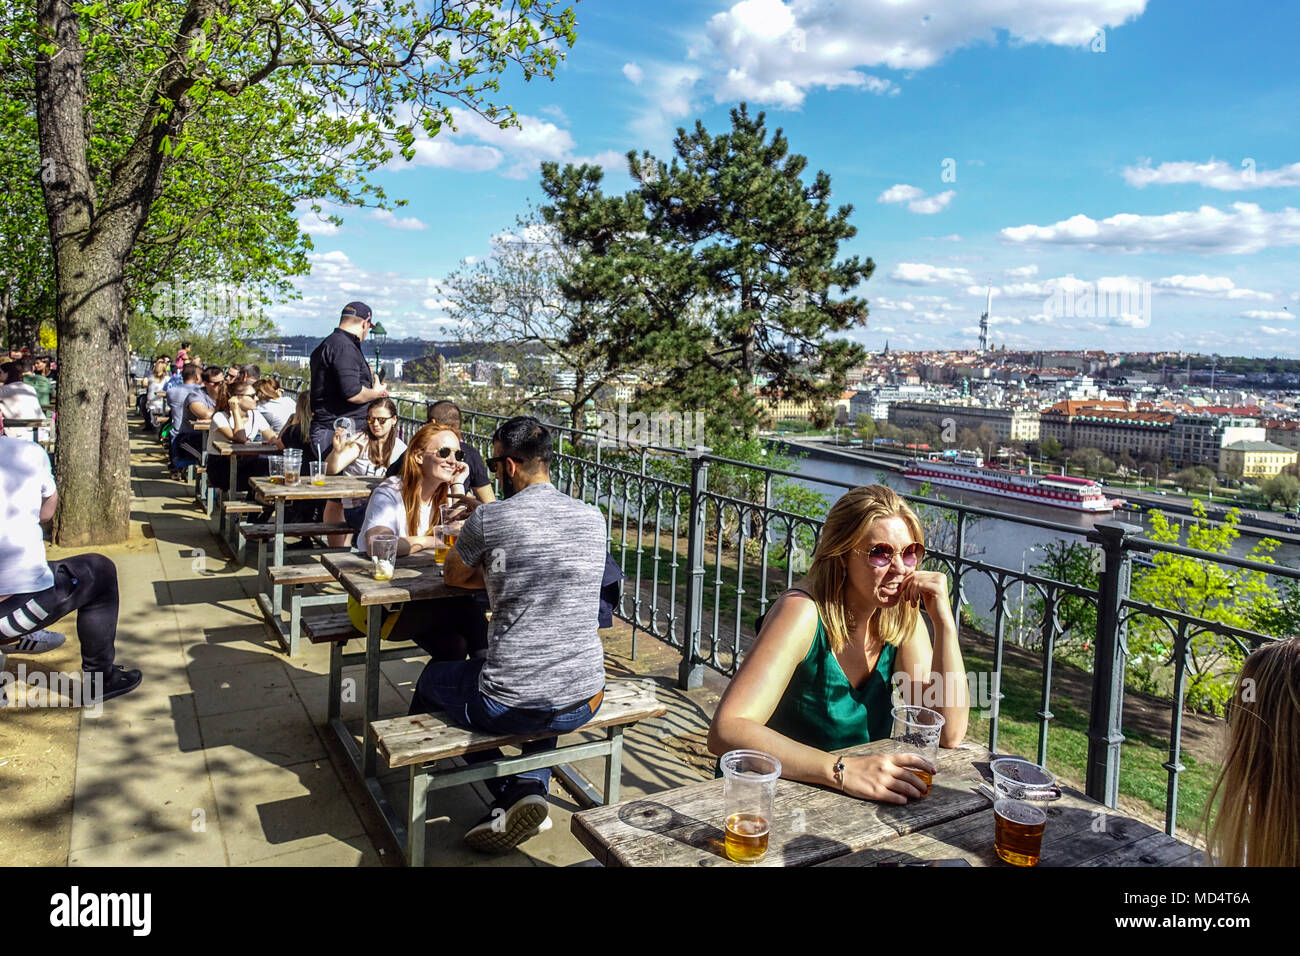 People at beer garden Letensky zamecek in Letna Park, Prague park Czech Republic Stock Photo